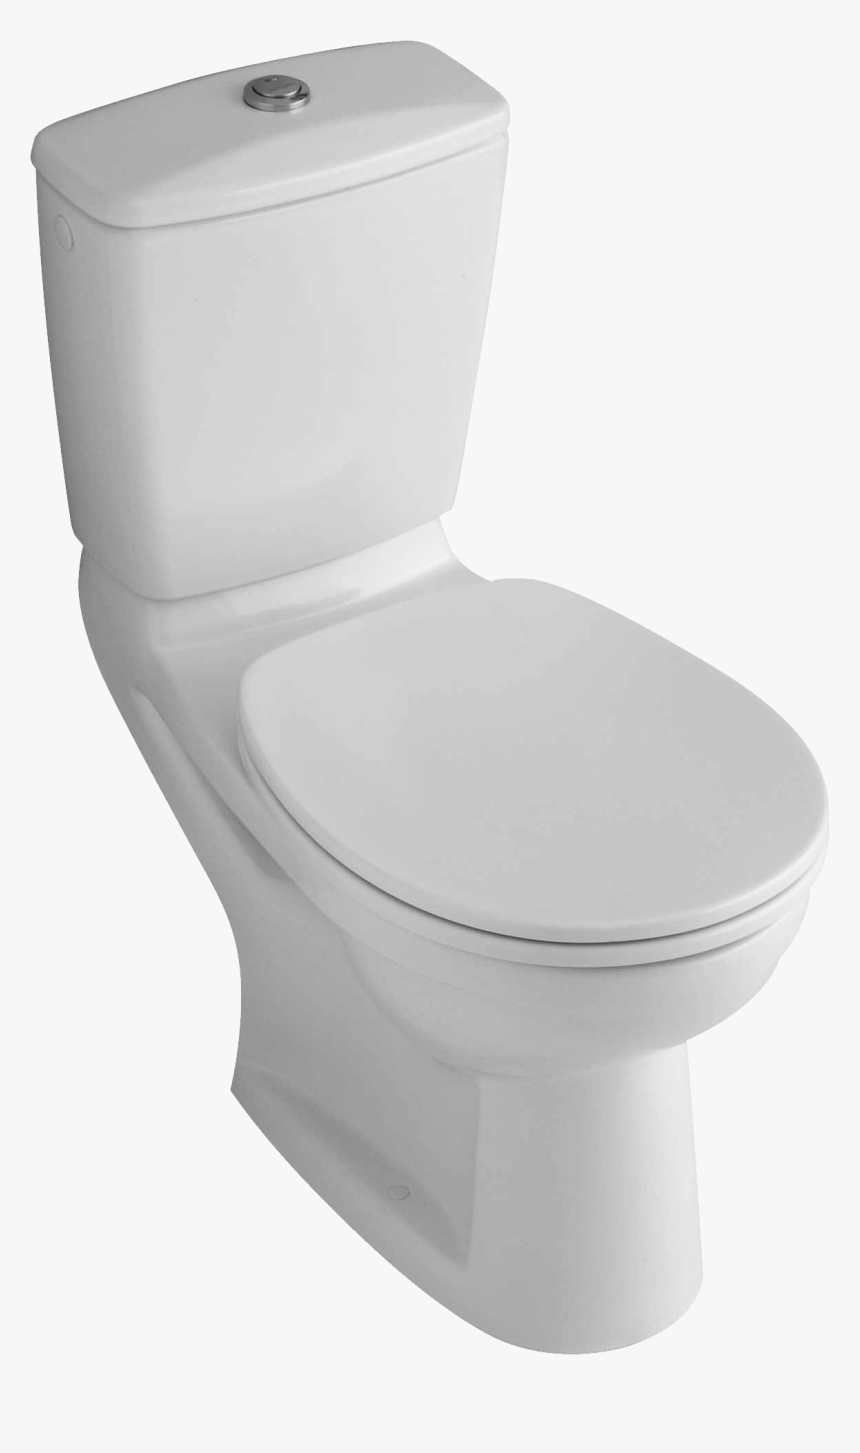 Toilet Seats Transparent Background, HD Png Download, Free Download